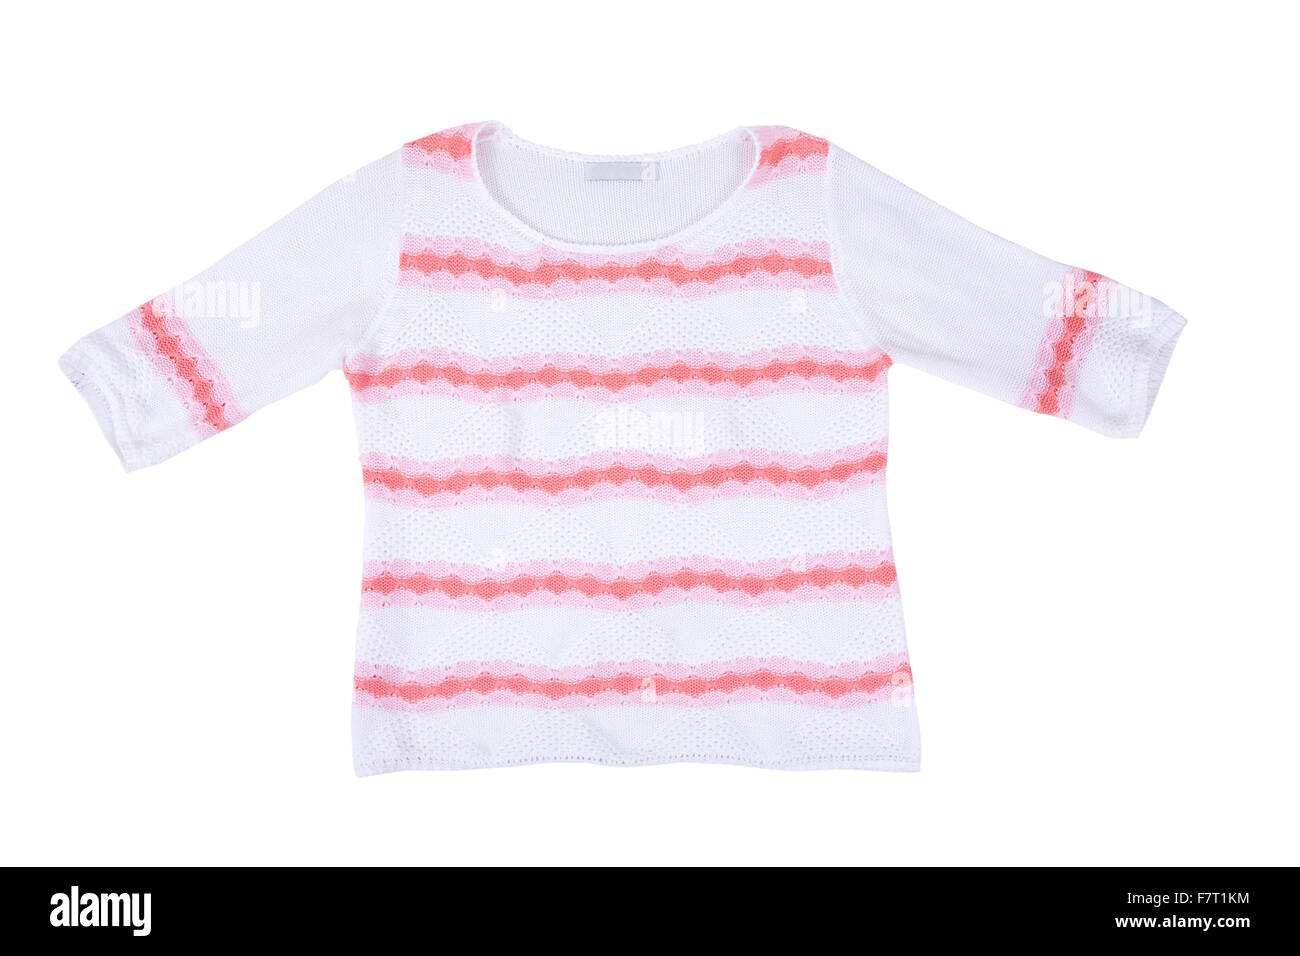 Red And Blue Striped Jumper Imágenes De Stock & Red And Blue Striped ...